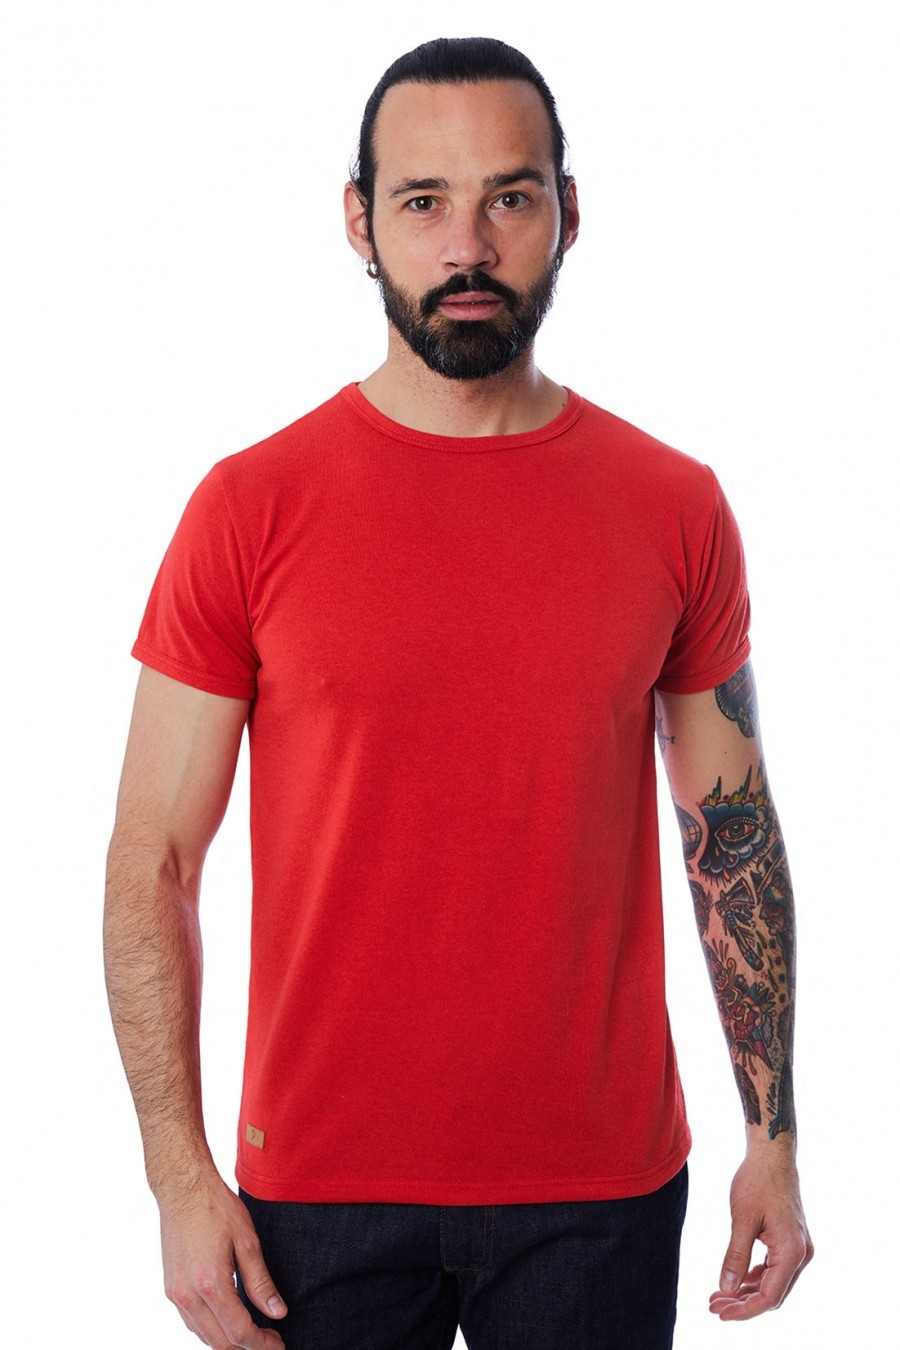 T-SHIRT HOMME MANCHE COURTE COL ROND ROUGE - Made in France & 100% Recyclé